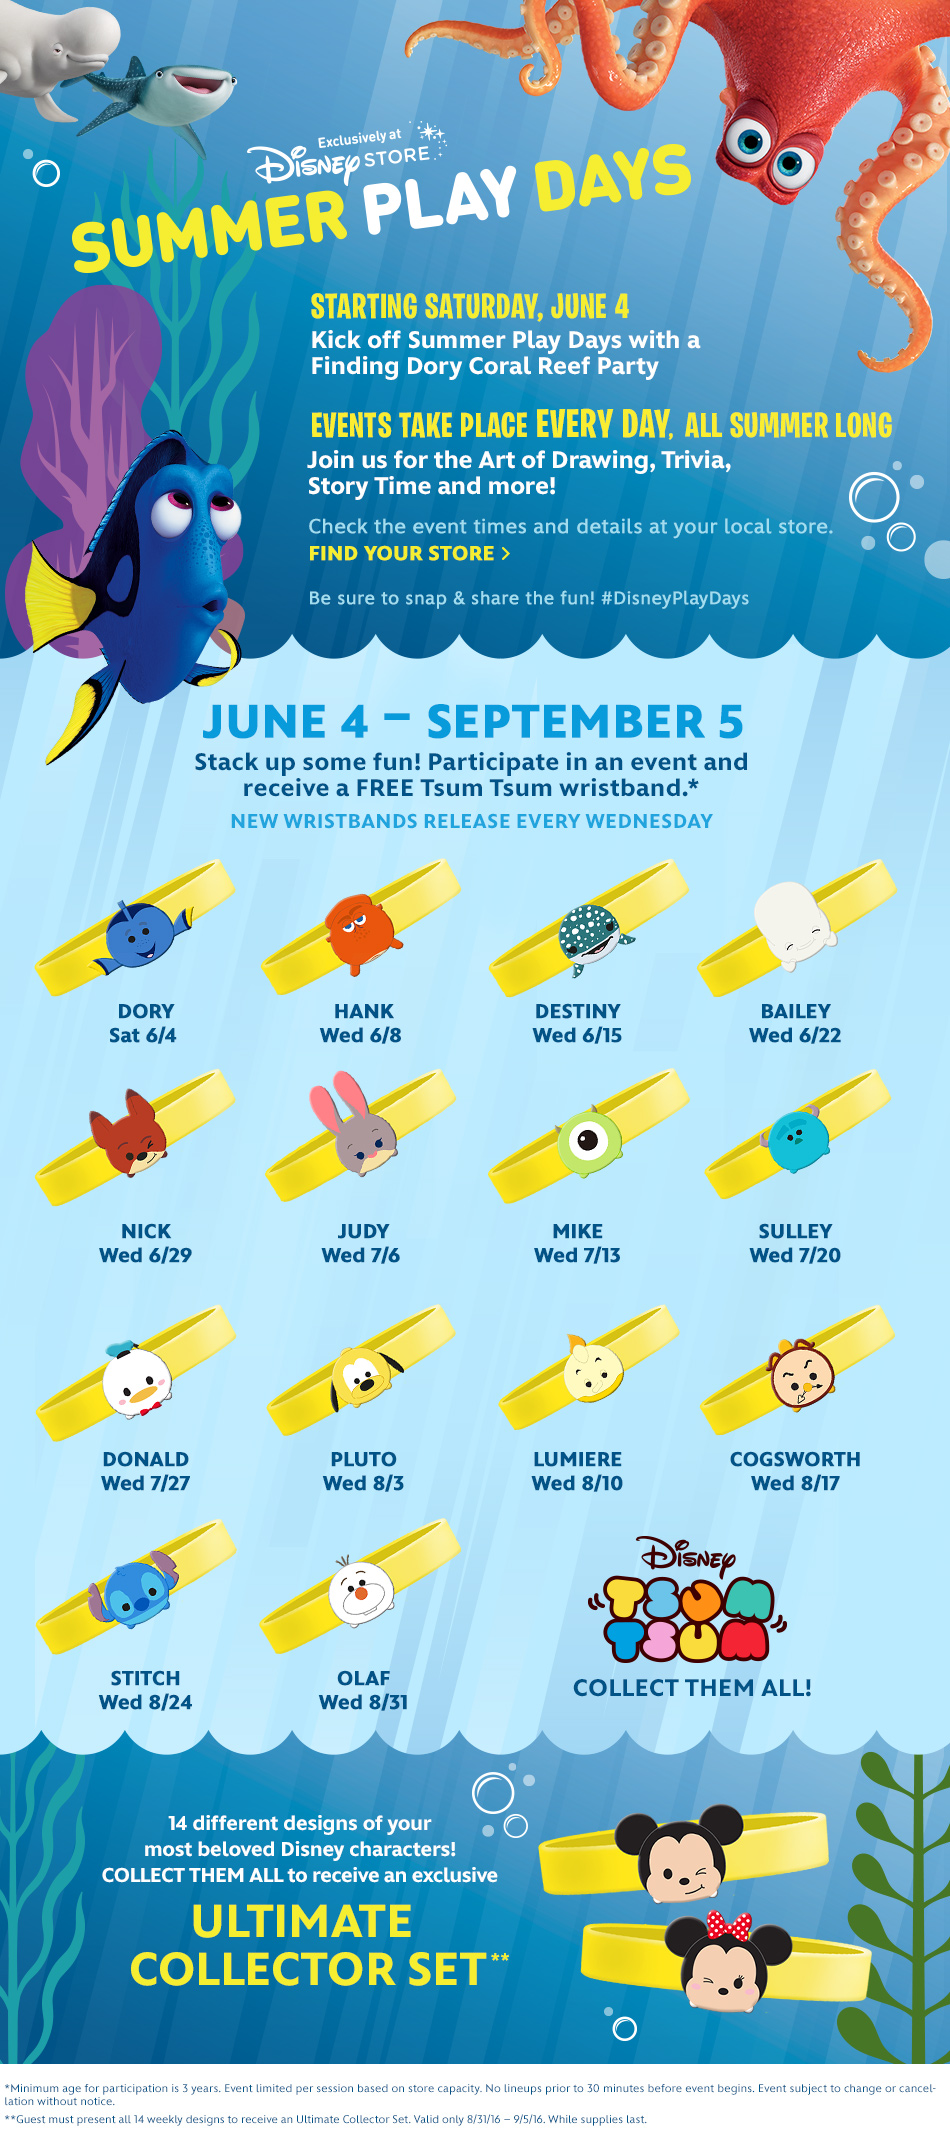 Summer Play Days - Starting Saturday, June 4 - Events take place every day all summer long - Check the event times and details at your local store.